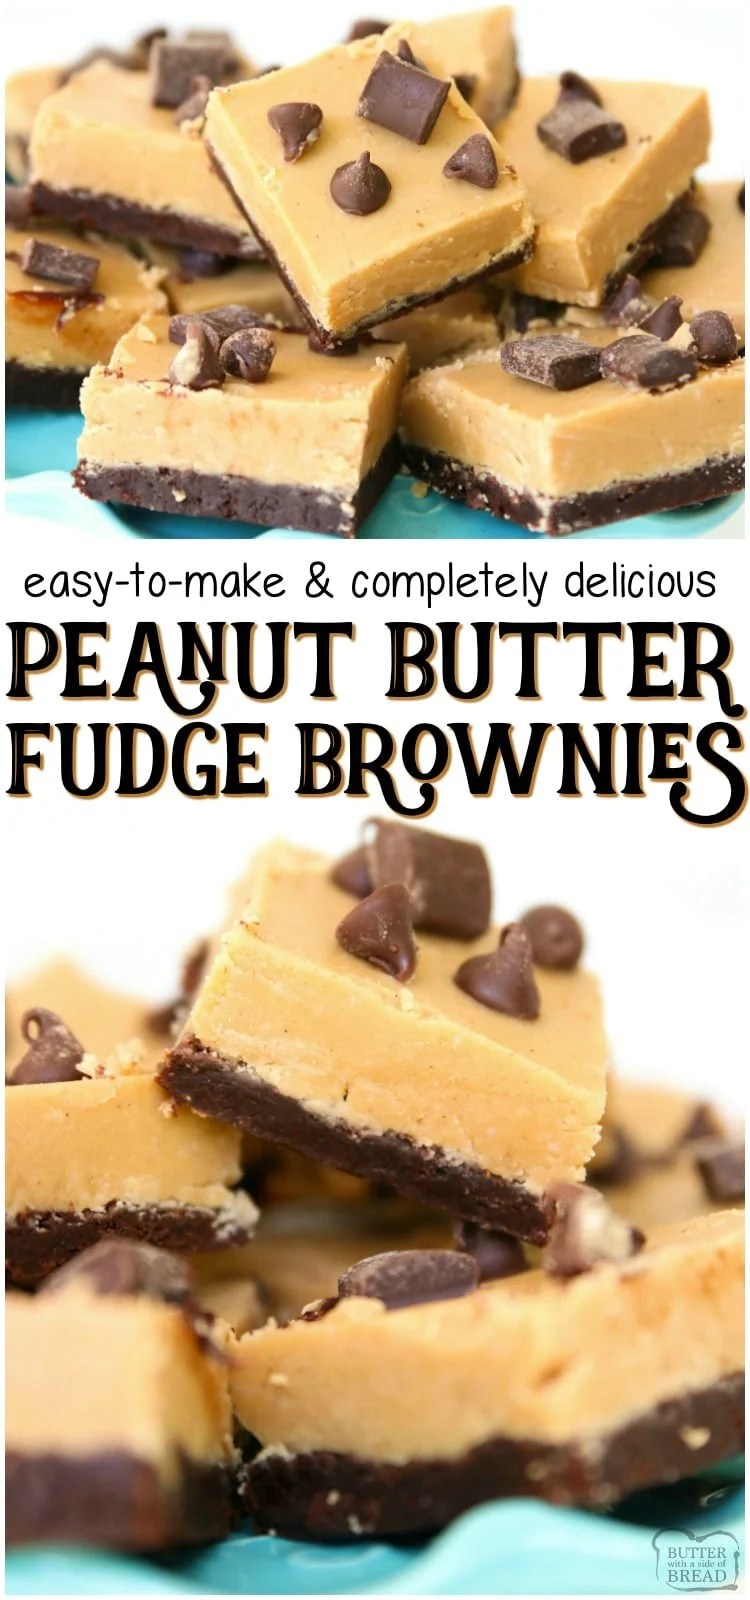 Peanut Butter Fudge Brownies made easy with 2 layers, a thin homemade brownie topped with smooth & creamy peanut butter fudge. Perfect chocolate peanut butter combination! #peanutbutter #fudge #brownies #baking #dessert #recipe from BUTTER WITH A SIDE OF BREAD